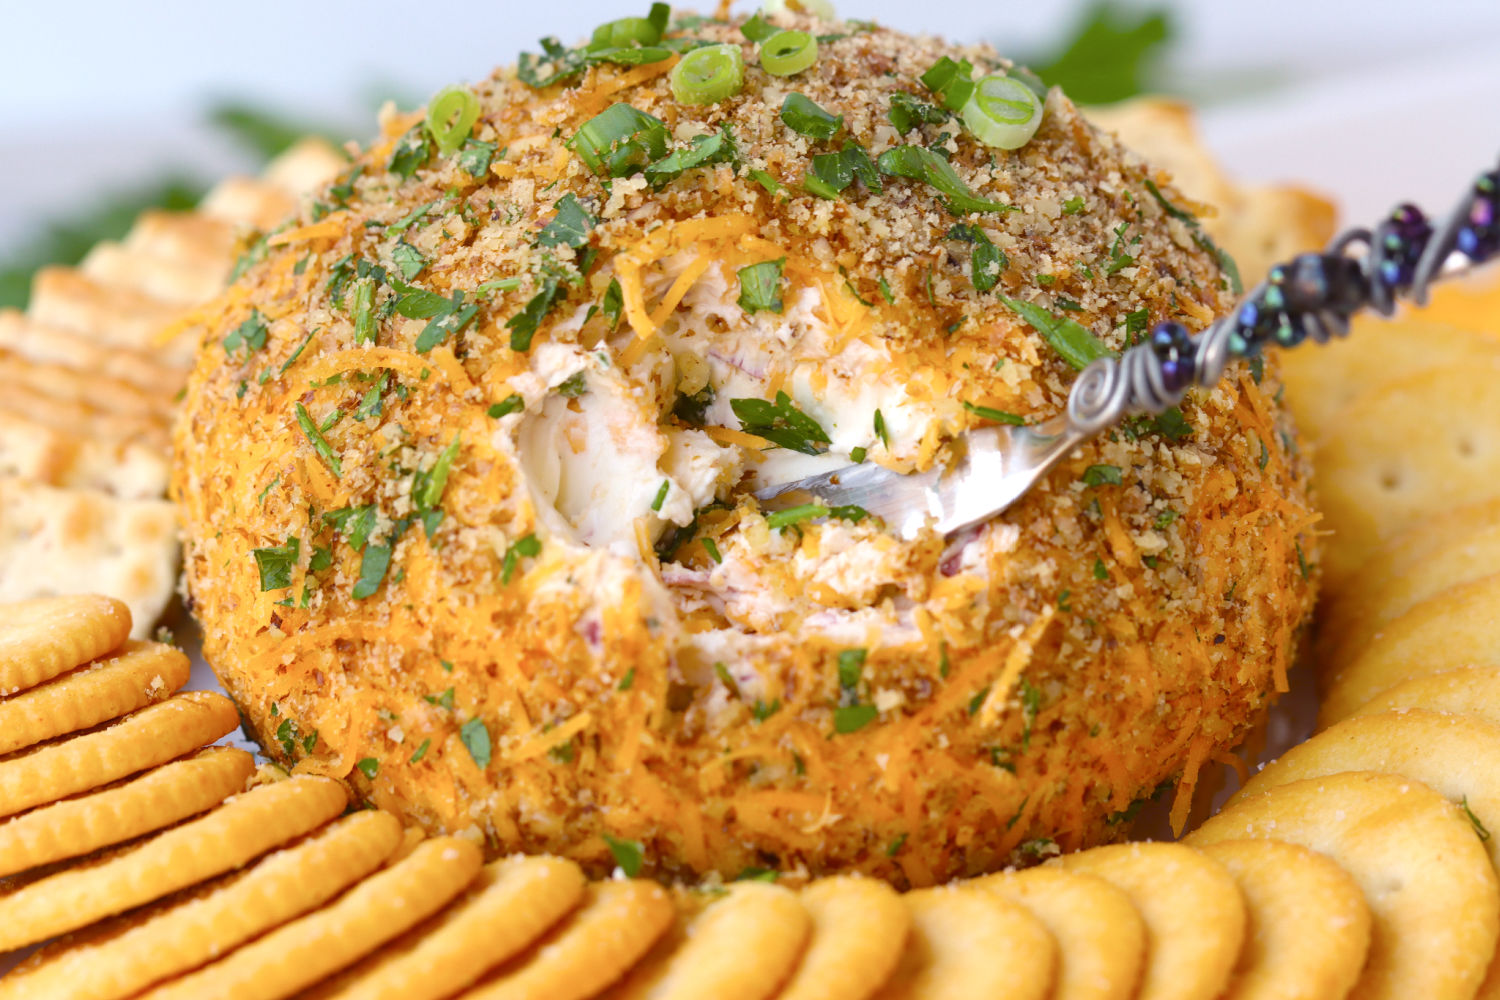 digging into cheese ball with a spreader knife